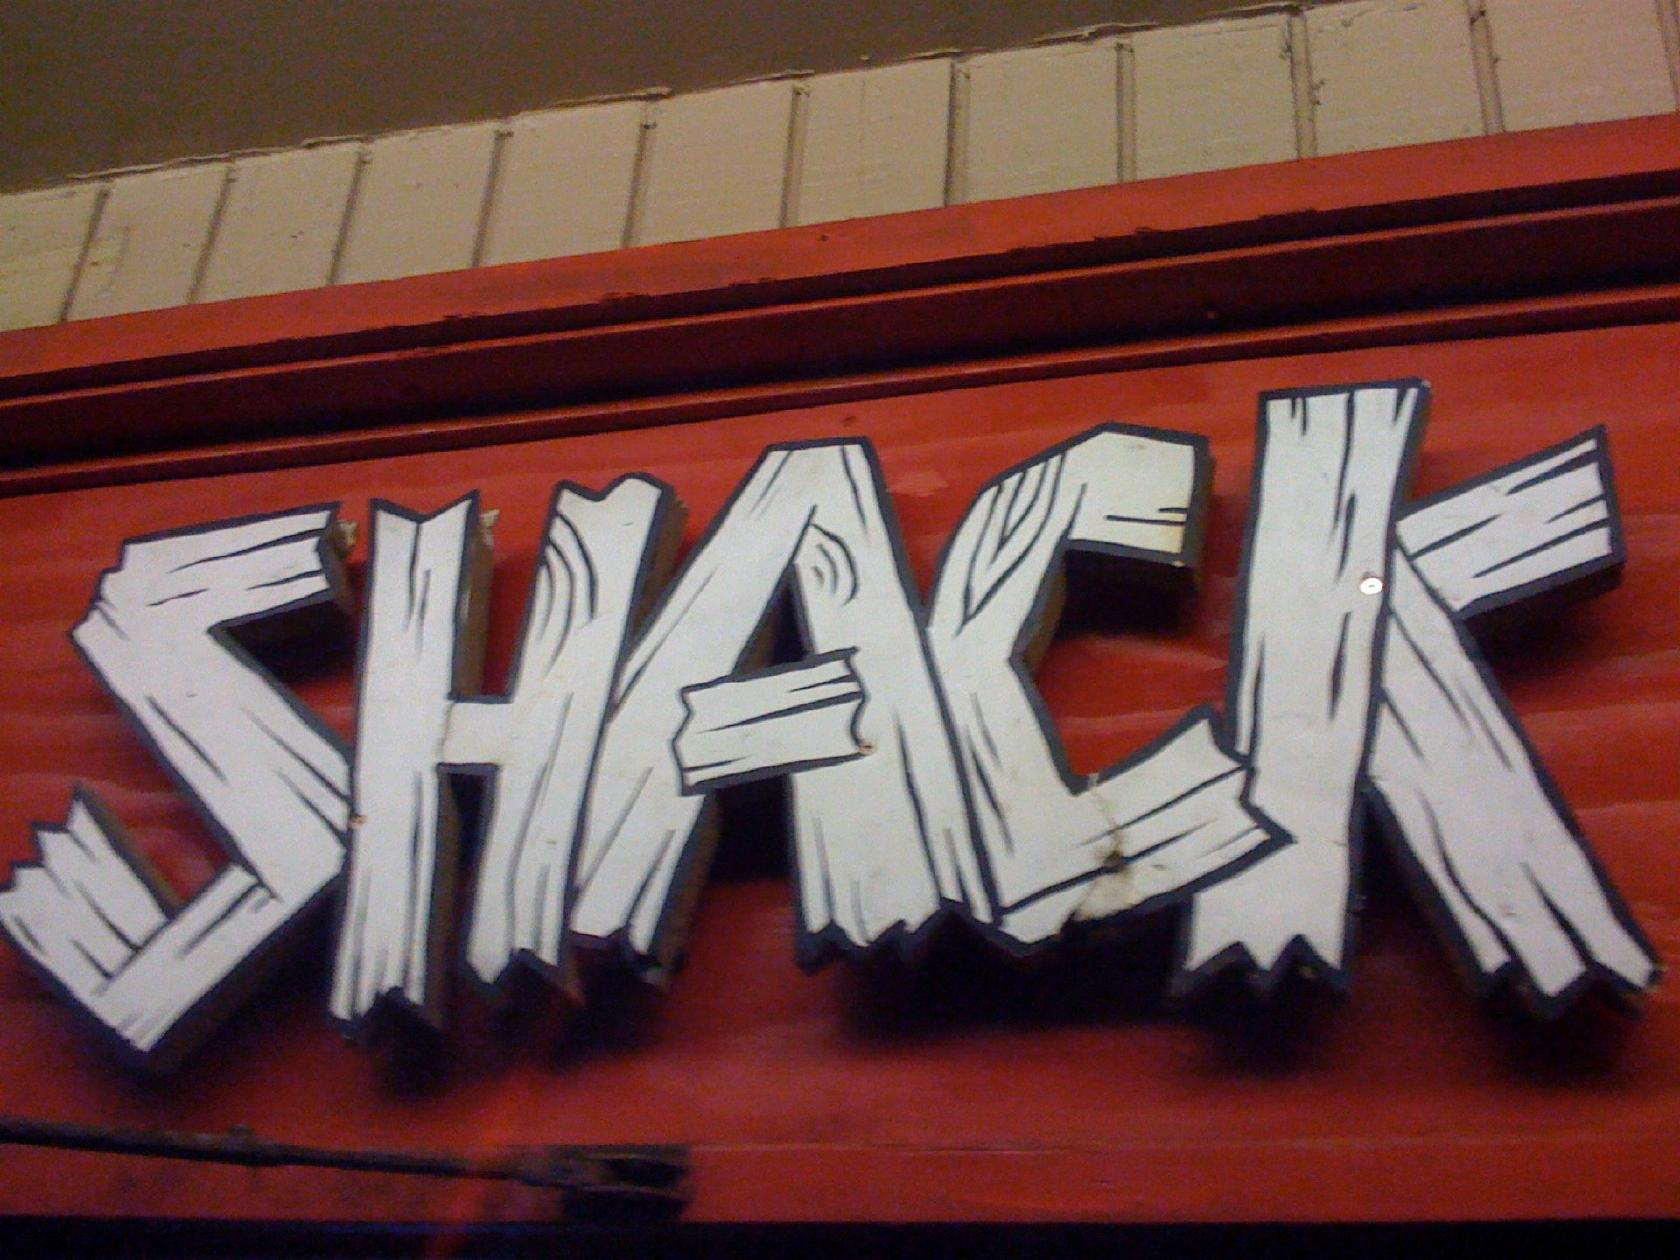 The Shack photo